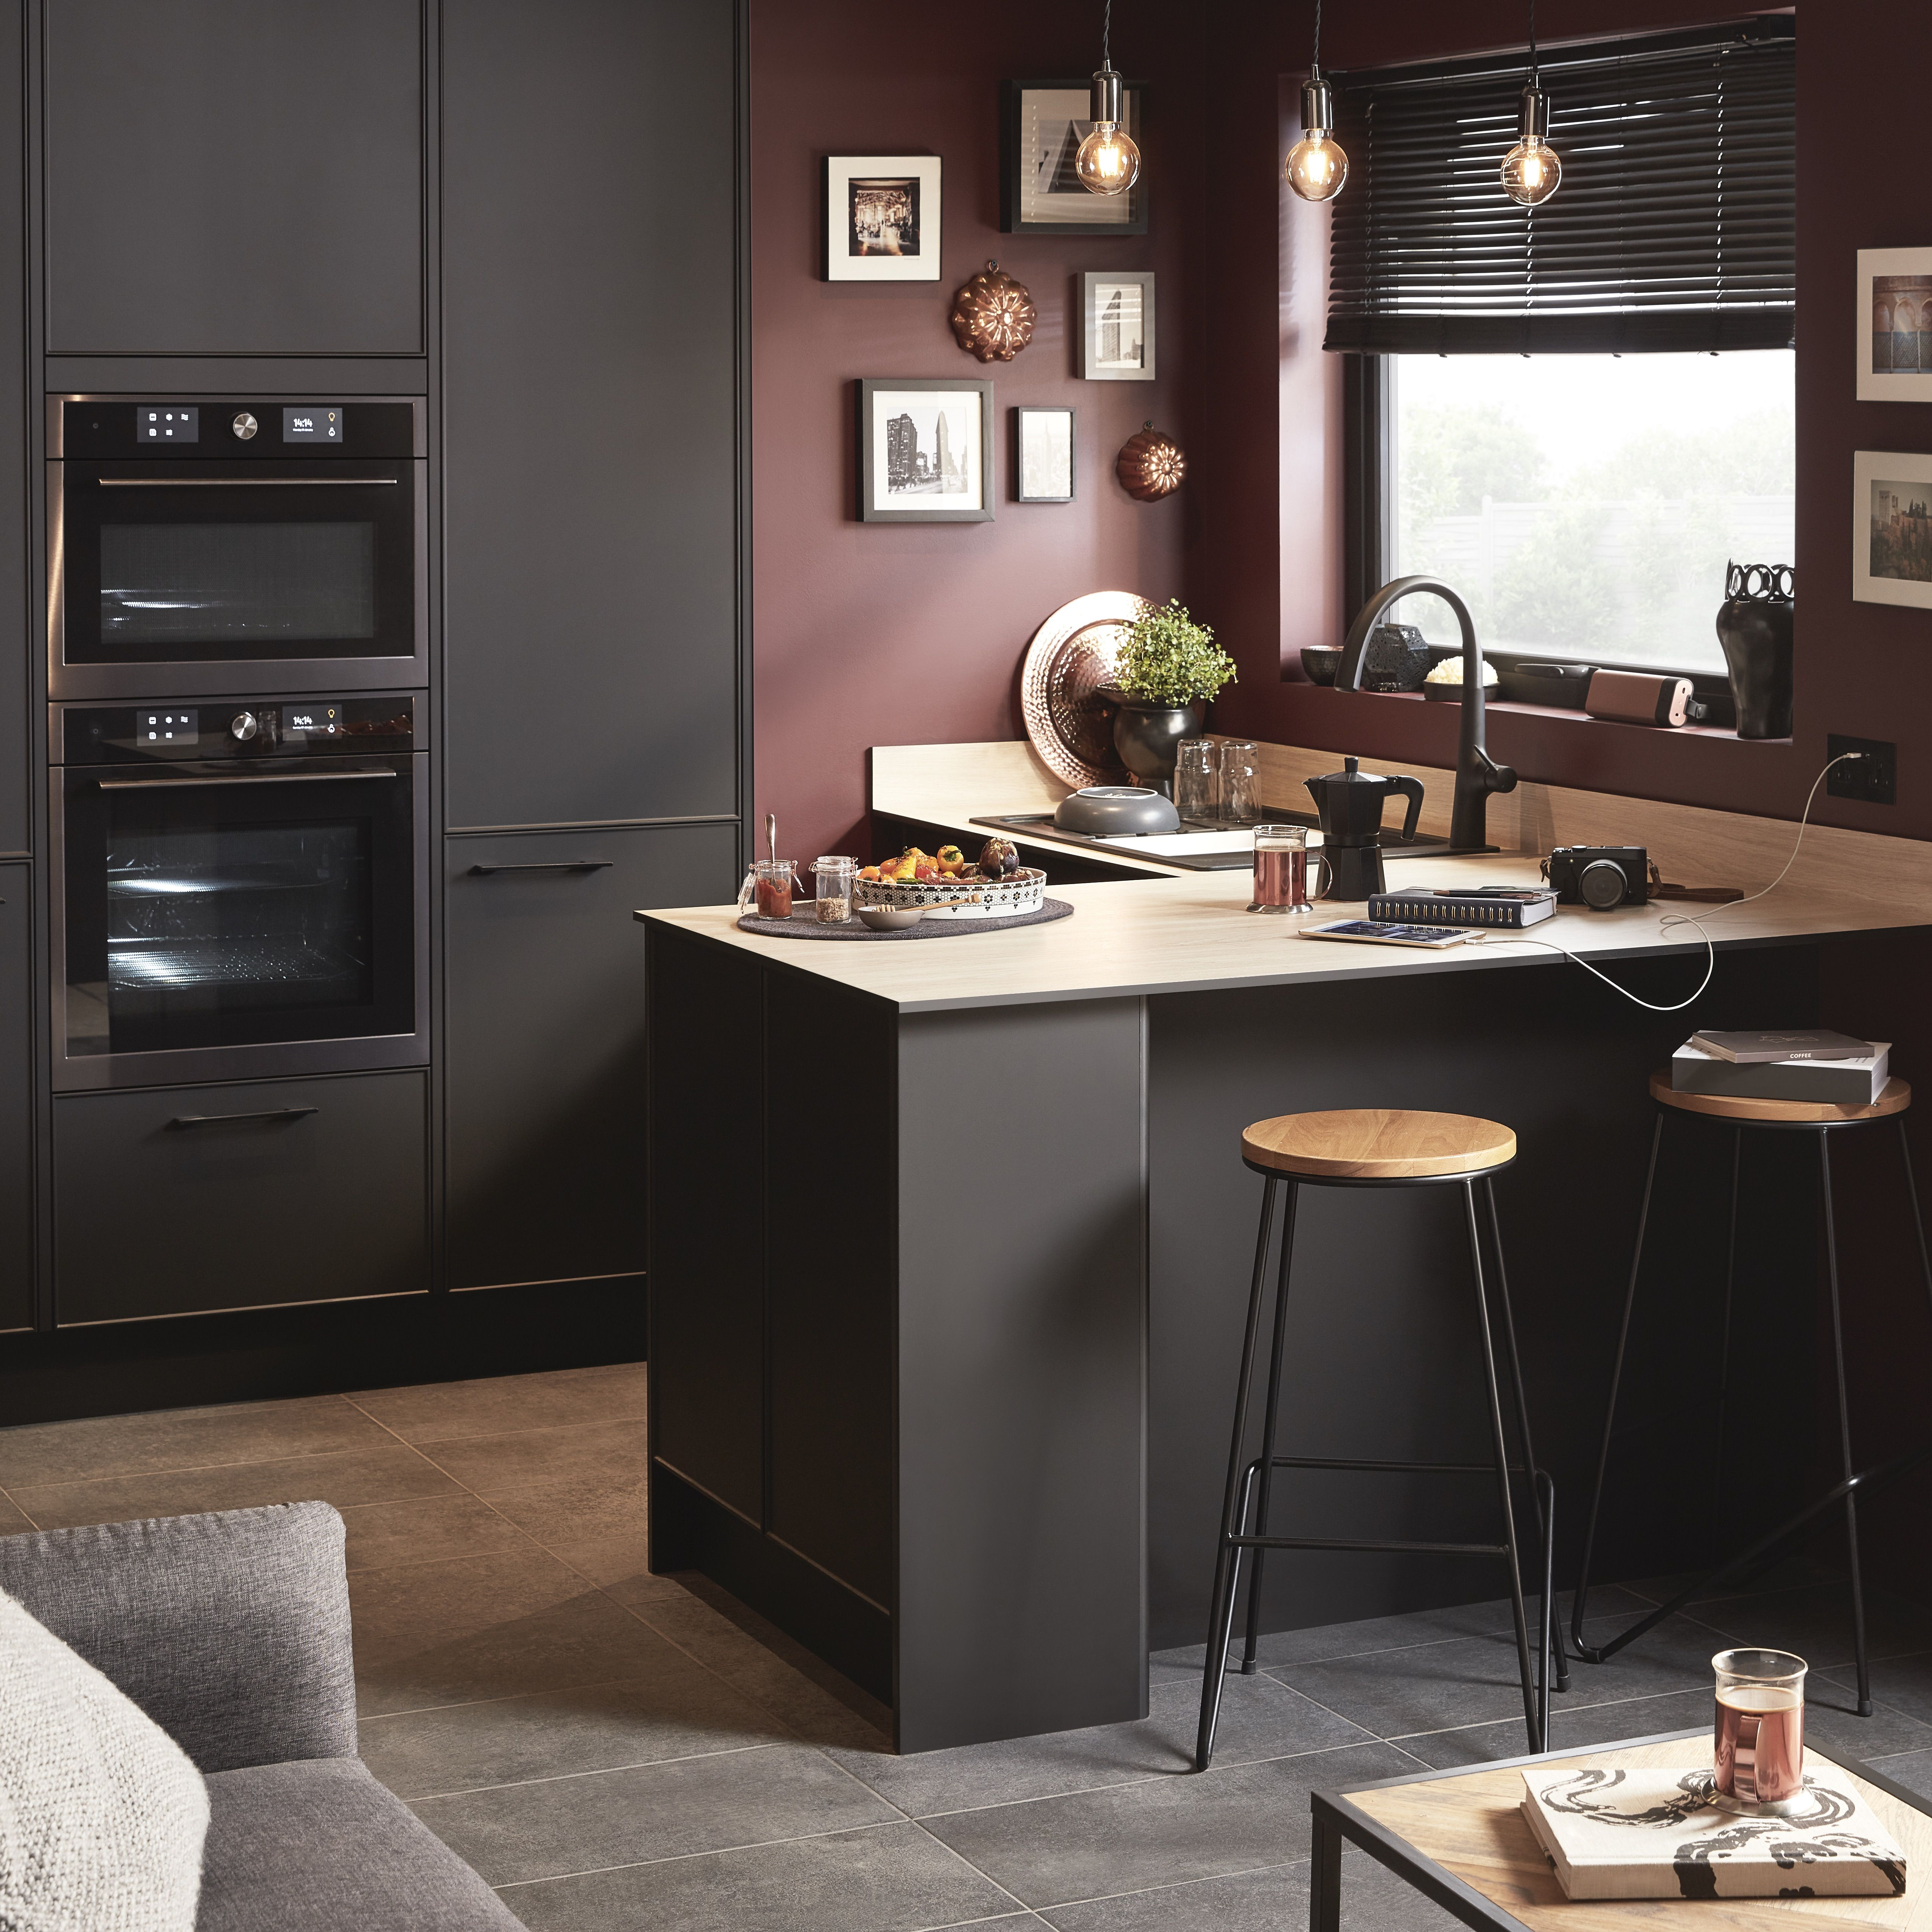 Ideal for small kitchens, our pasilla range has a slimmed